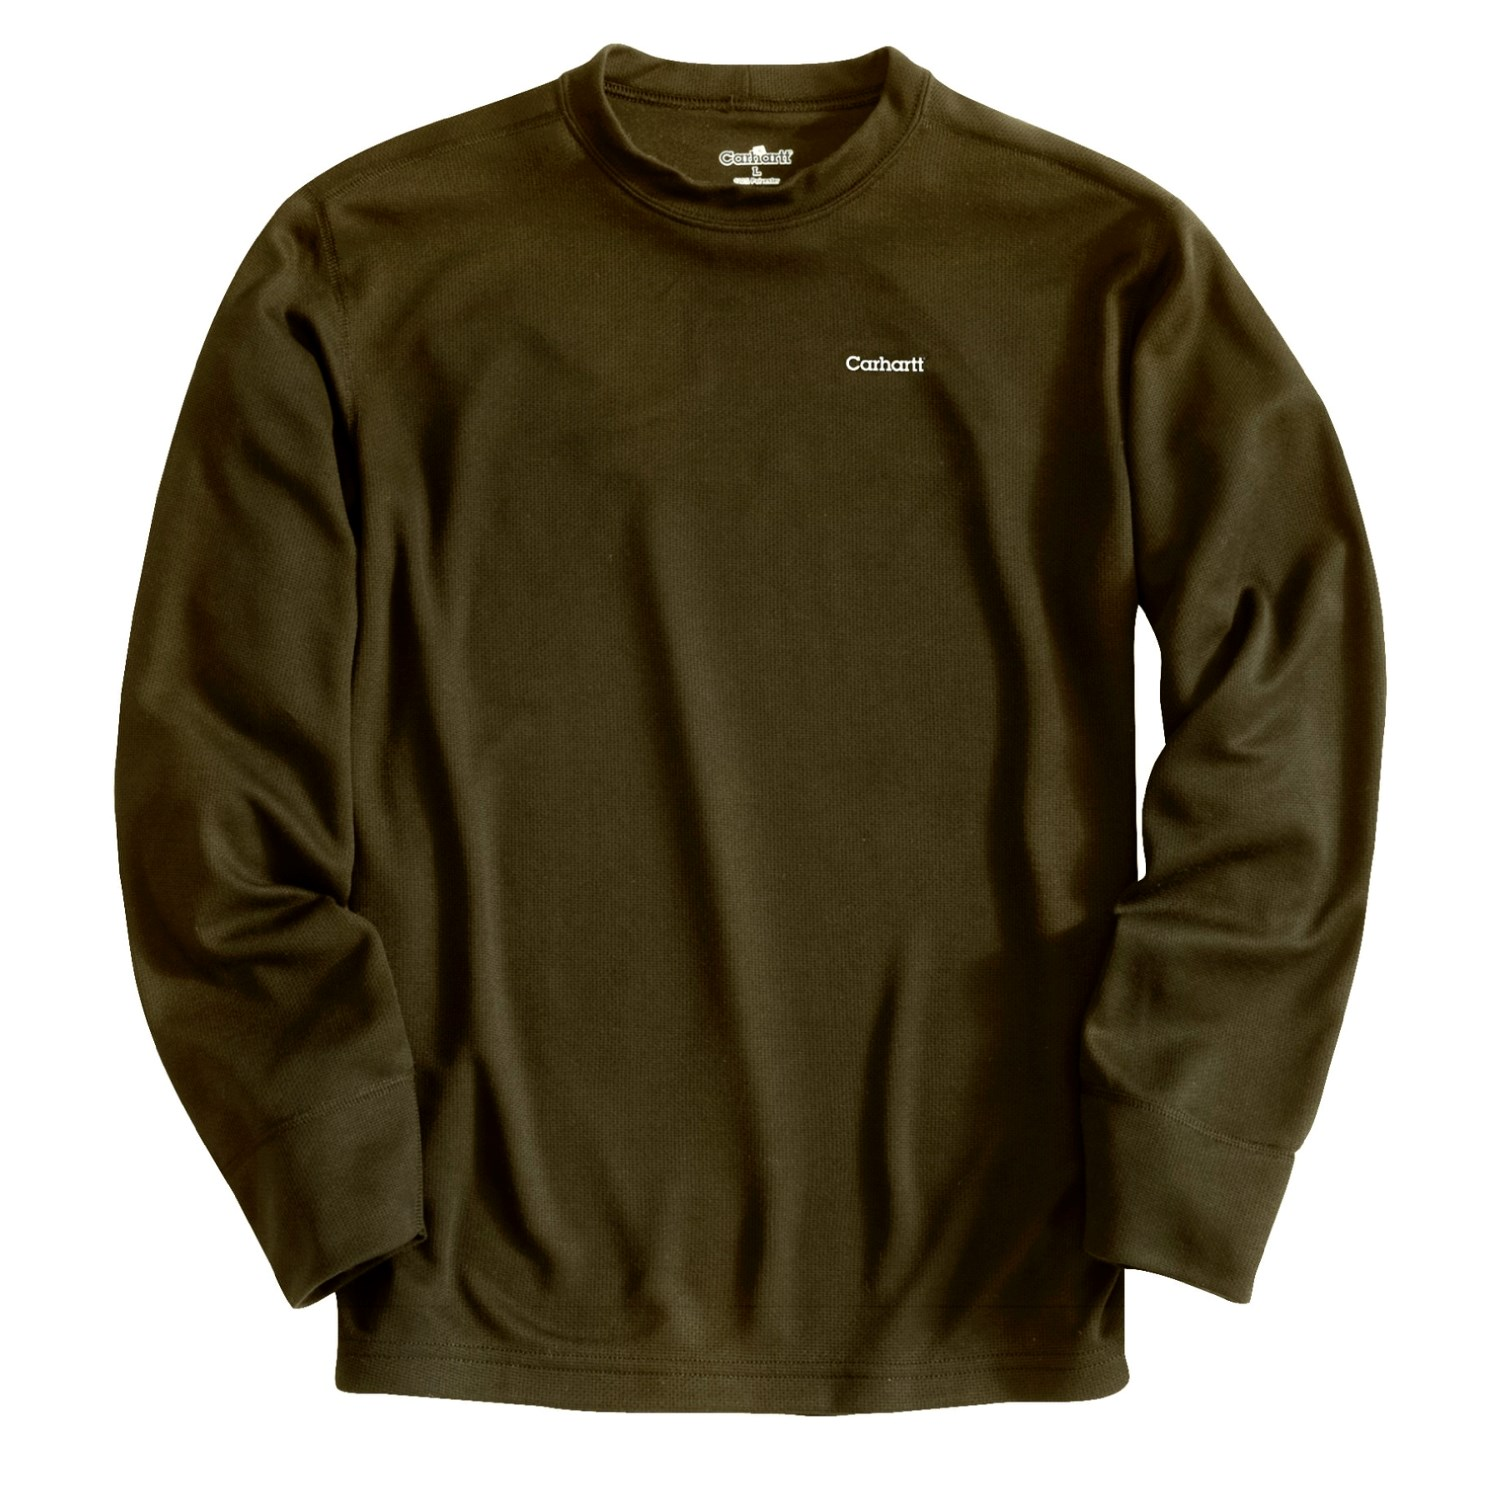 Carhartt work dry thermal base layer top for tall men 2239f for Carhartt work dry t shirt